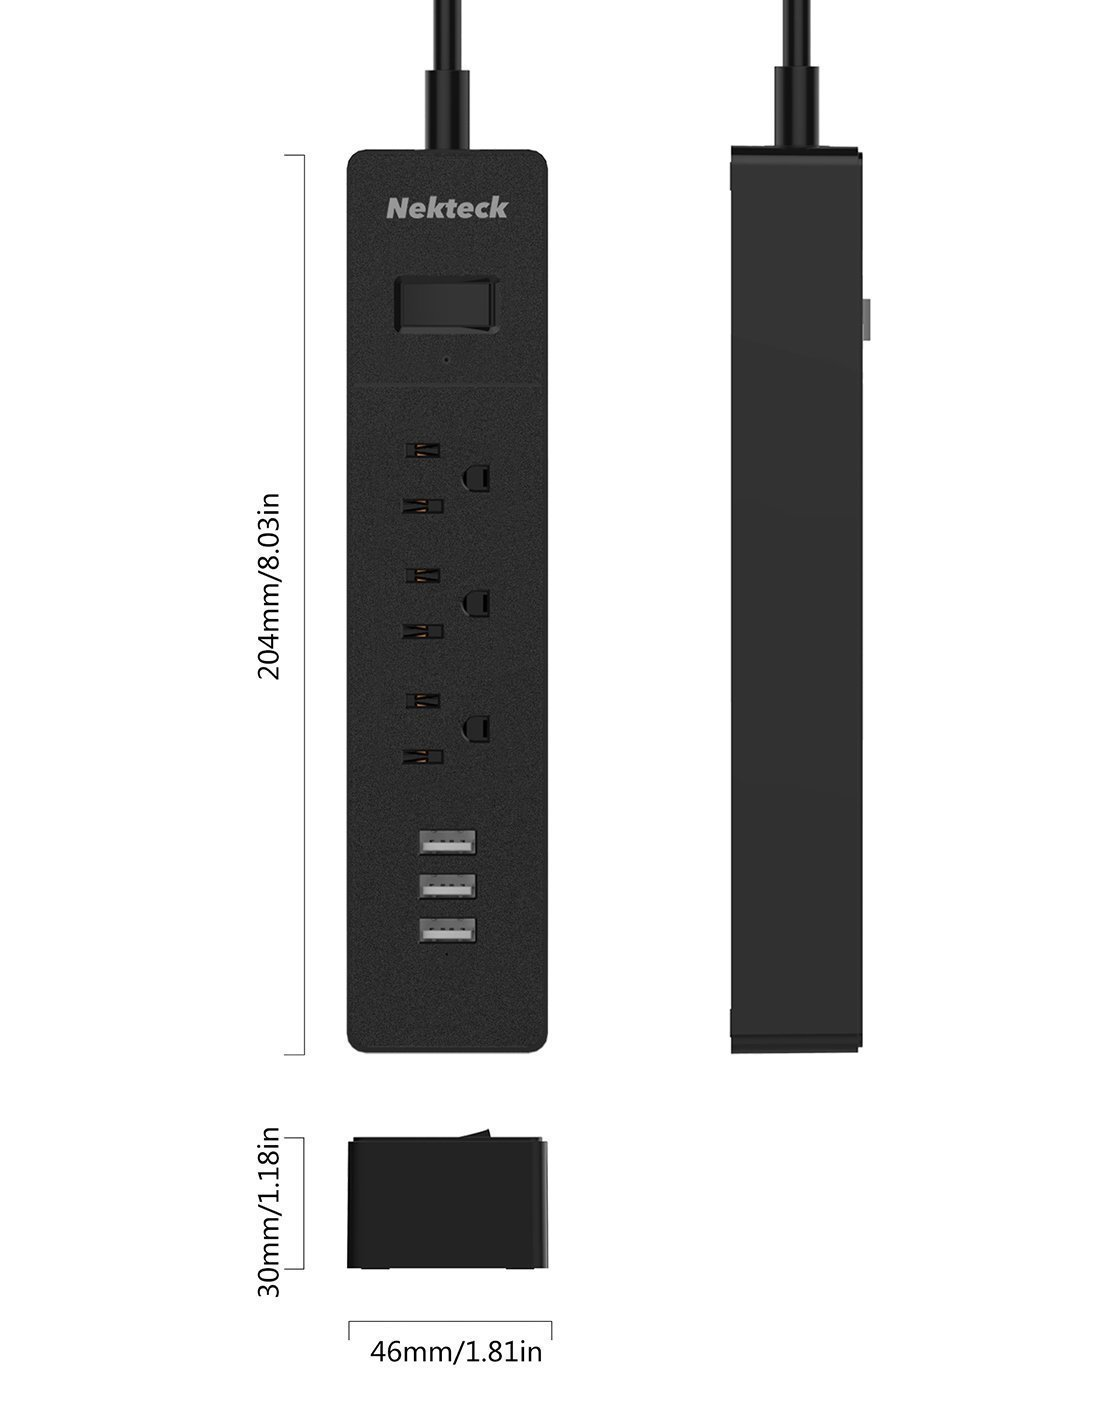 Nekteck Travel Power Strip/Surge Protector Flat Wall Plug with 3 AC Outlets, 15W 3-Port USB Charger for iPhone, iPad, Samsung Galaxys, Nexus, Tablets, LG and More [4.8ft Cord, 3AC, 3 USB] - 2 Pack